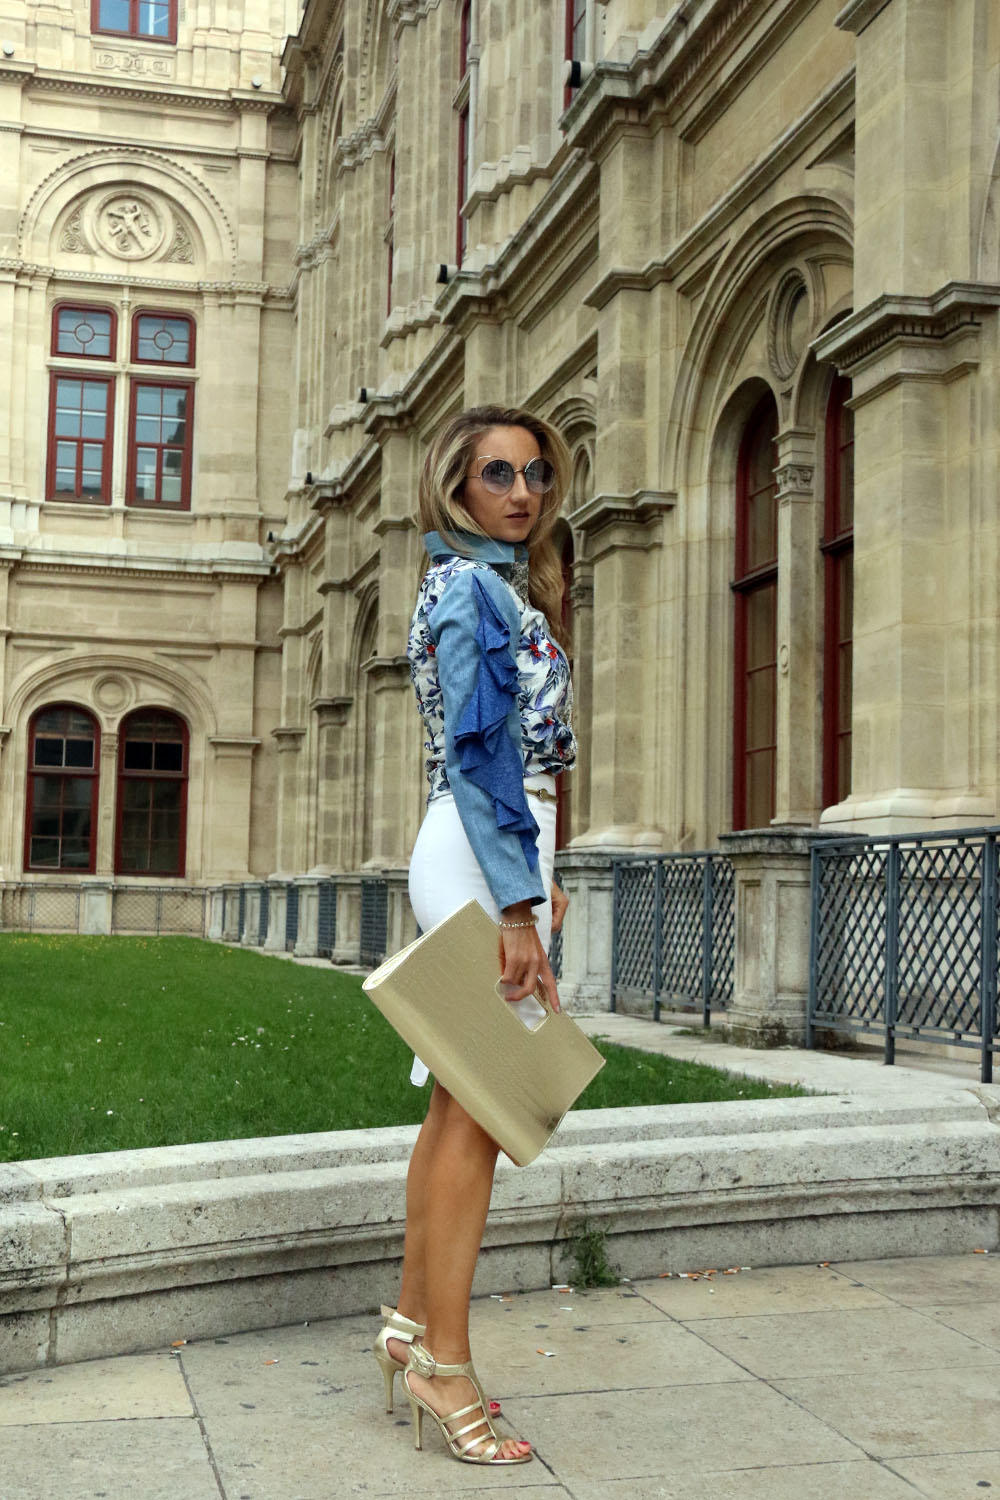 colurclub_fashion_blog_outfit_juan-carlos-cordillo-shirt-guess-shoes-gold-bag3a